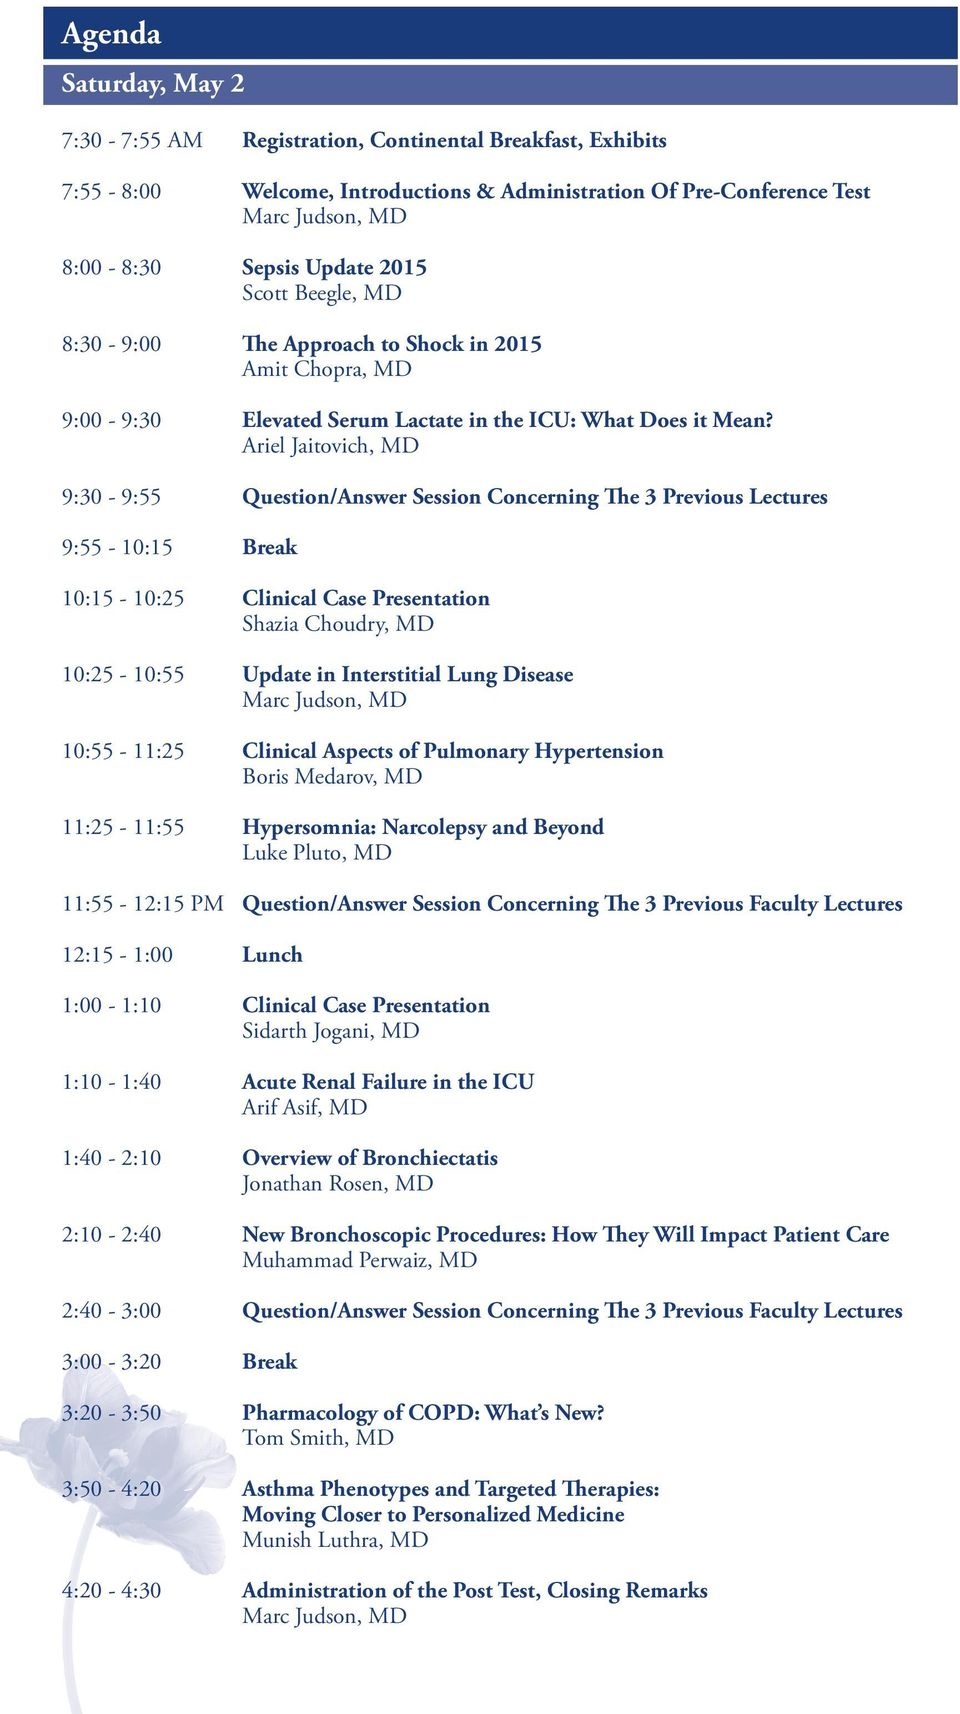 Ariel Jaitovich, MD 9:30-9:55 Question/Answer Session Concerning The 3 Previous Lectures 9:55-10:15 Break 10:15-10:25 Clinical Case Presentation Shazia Choudry, MD 10:25-10:55 Update in Interstitial